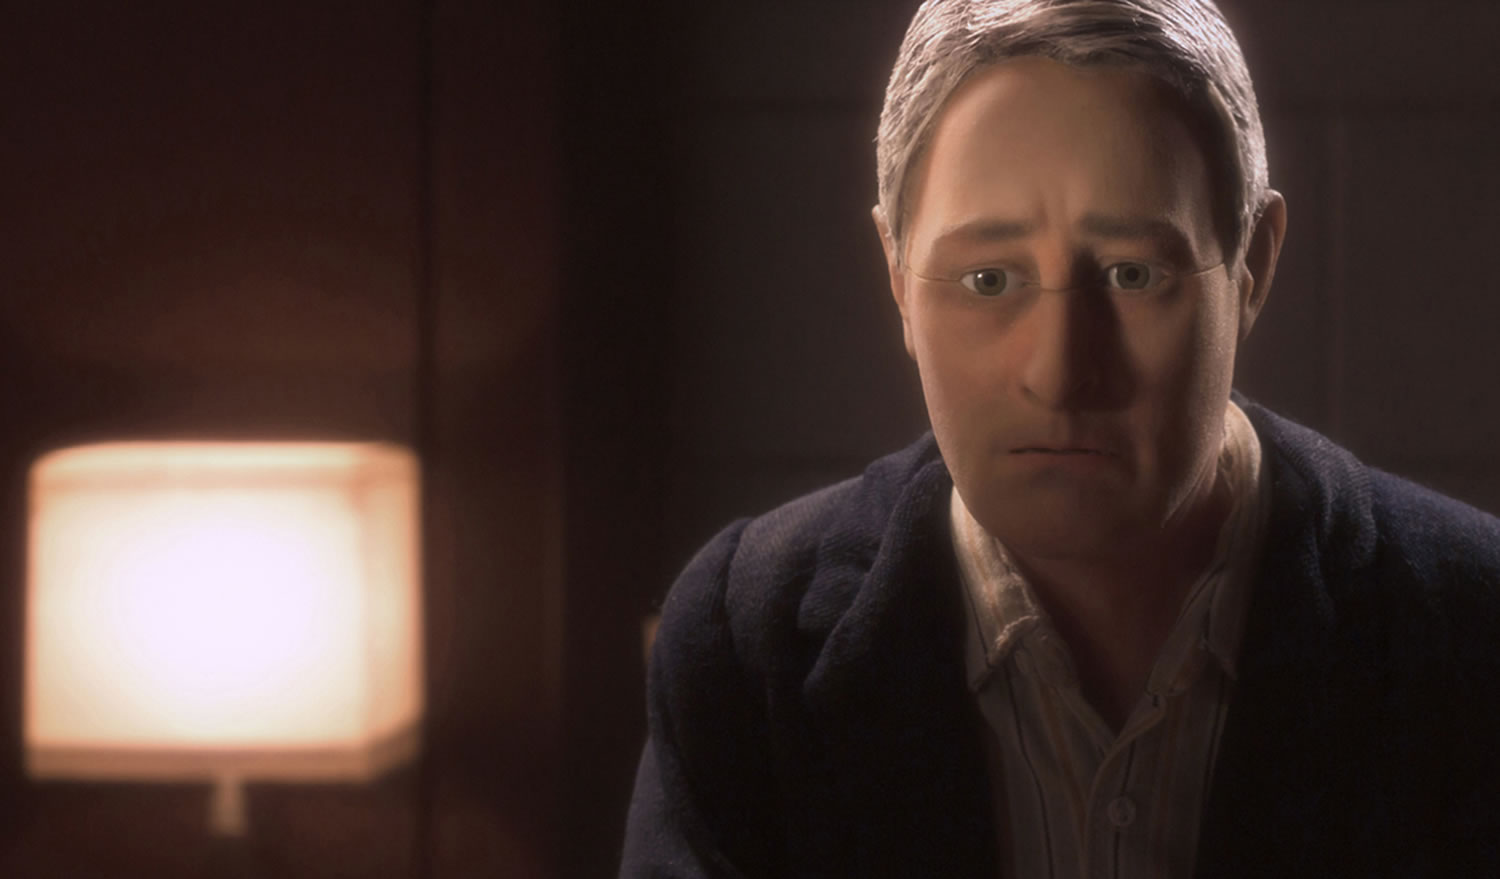 A man crippled by the mundanity of his life experiences, anomalisa